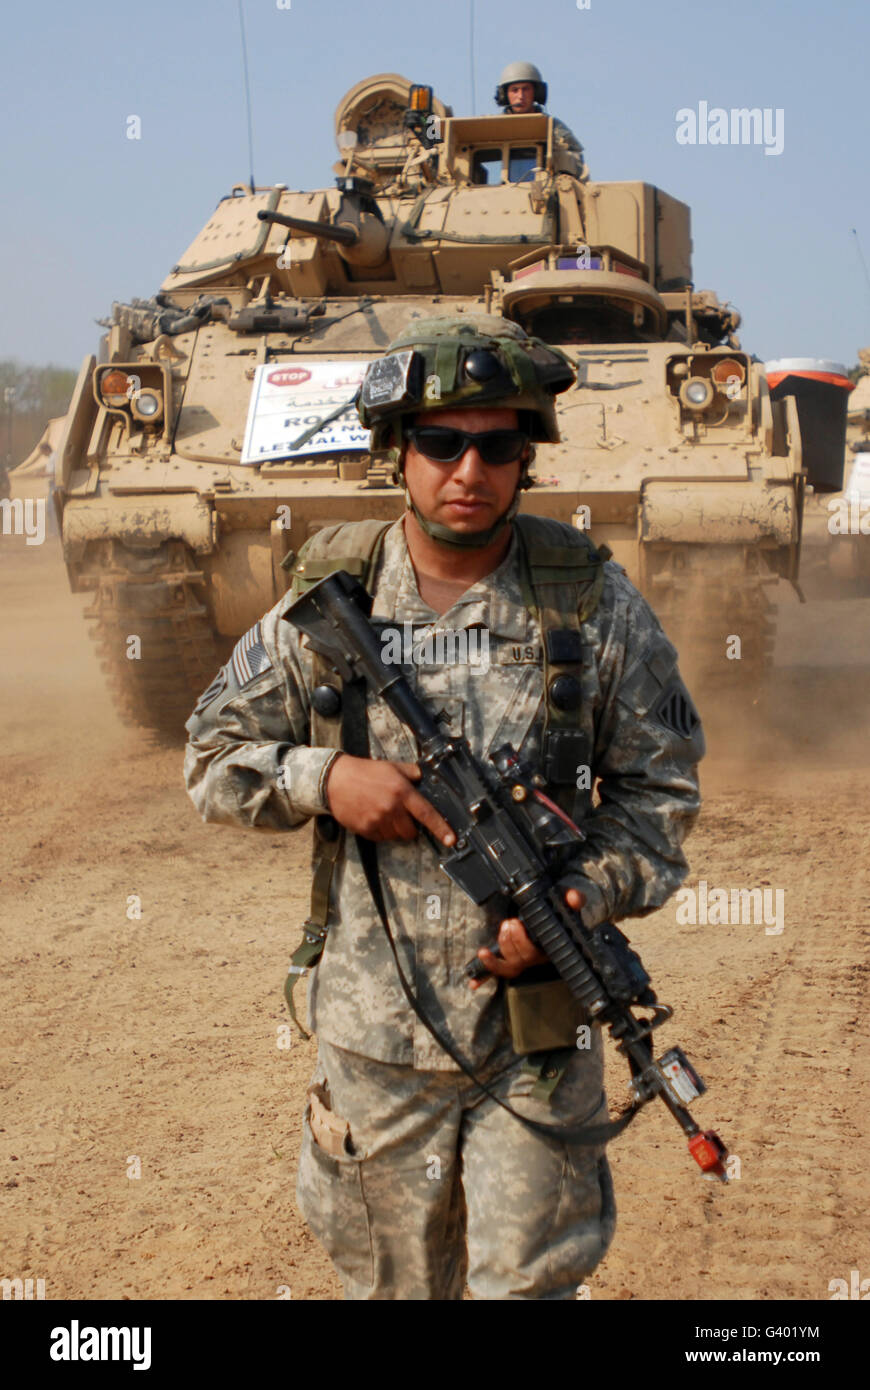 U.S. Army Sergeant ground guides an M2 Bradley Fighting Vehicle. - Stock Image